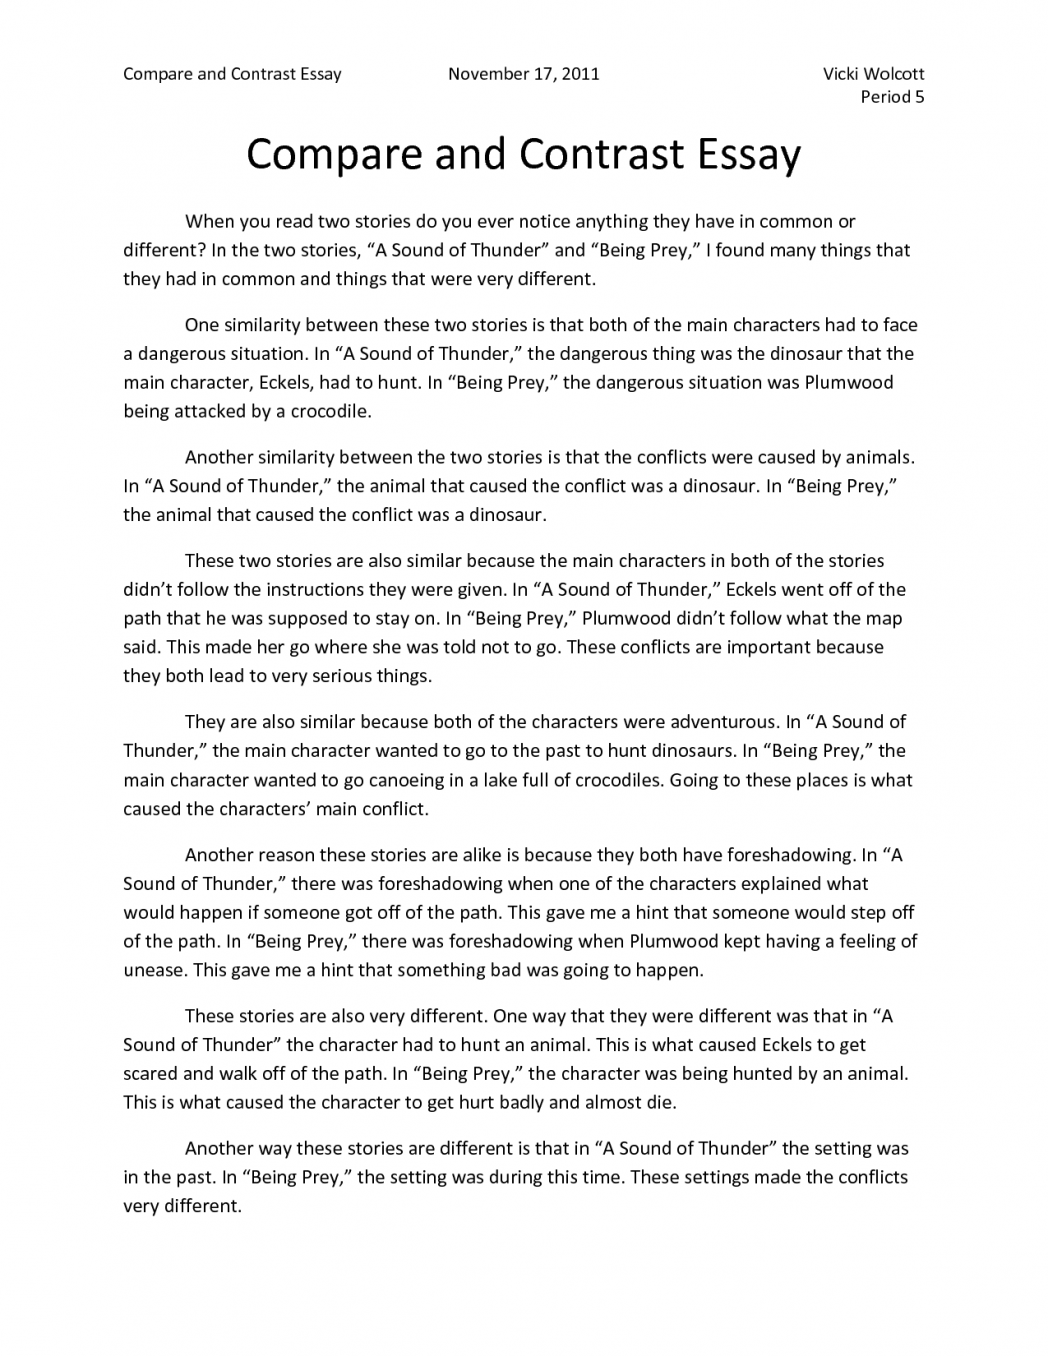 004 Argumentative Essay Topic Ideas Causal Topics Compare And Contrast For Argument Or Position 1048x1356 Surprising Rogerian Sentence 100 Easy Full